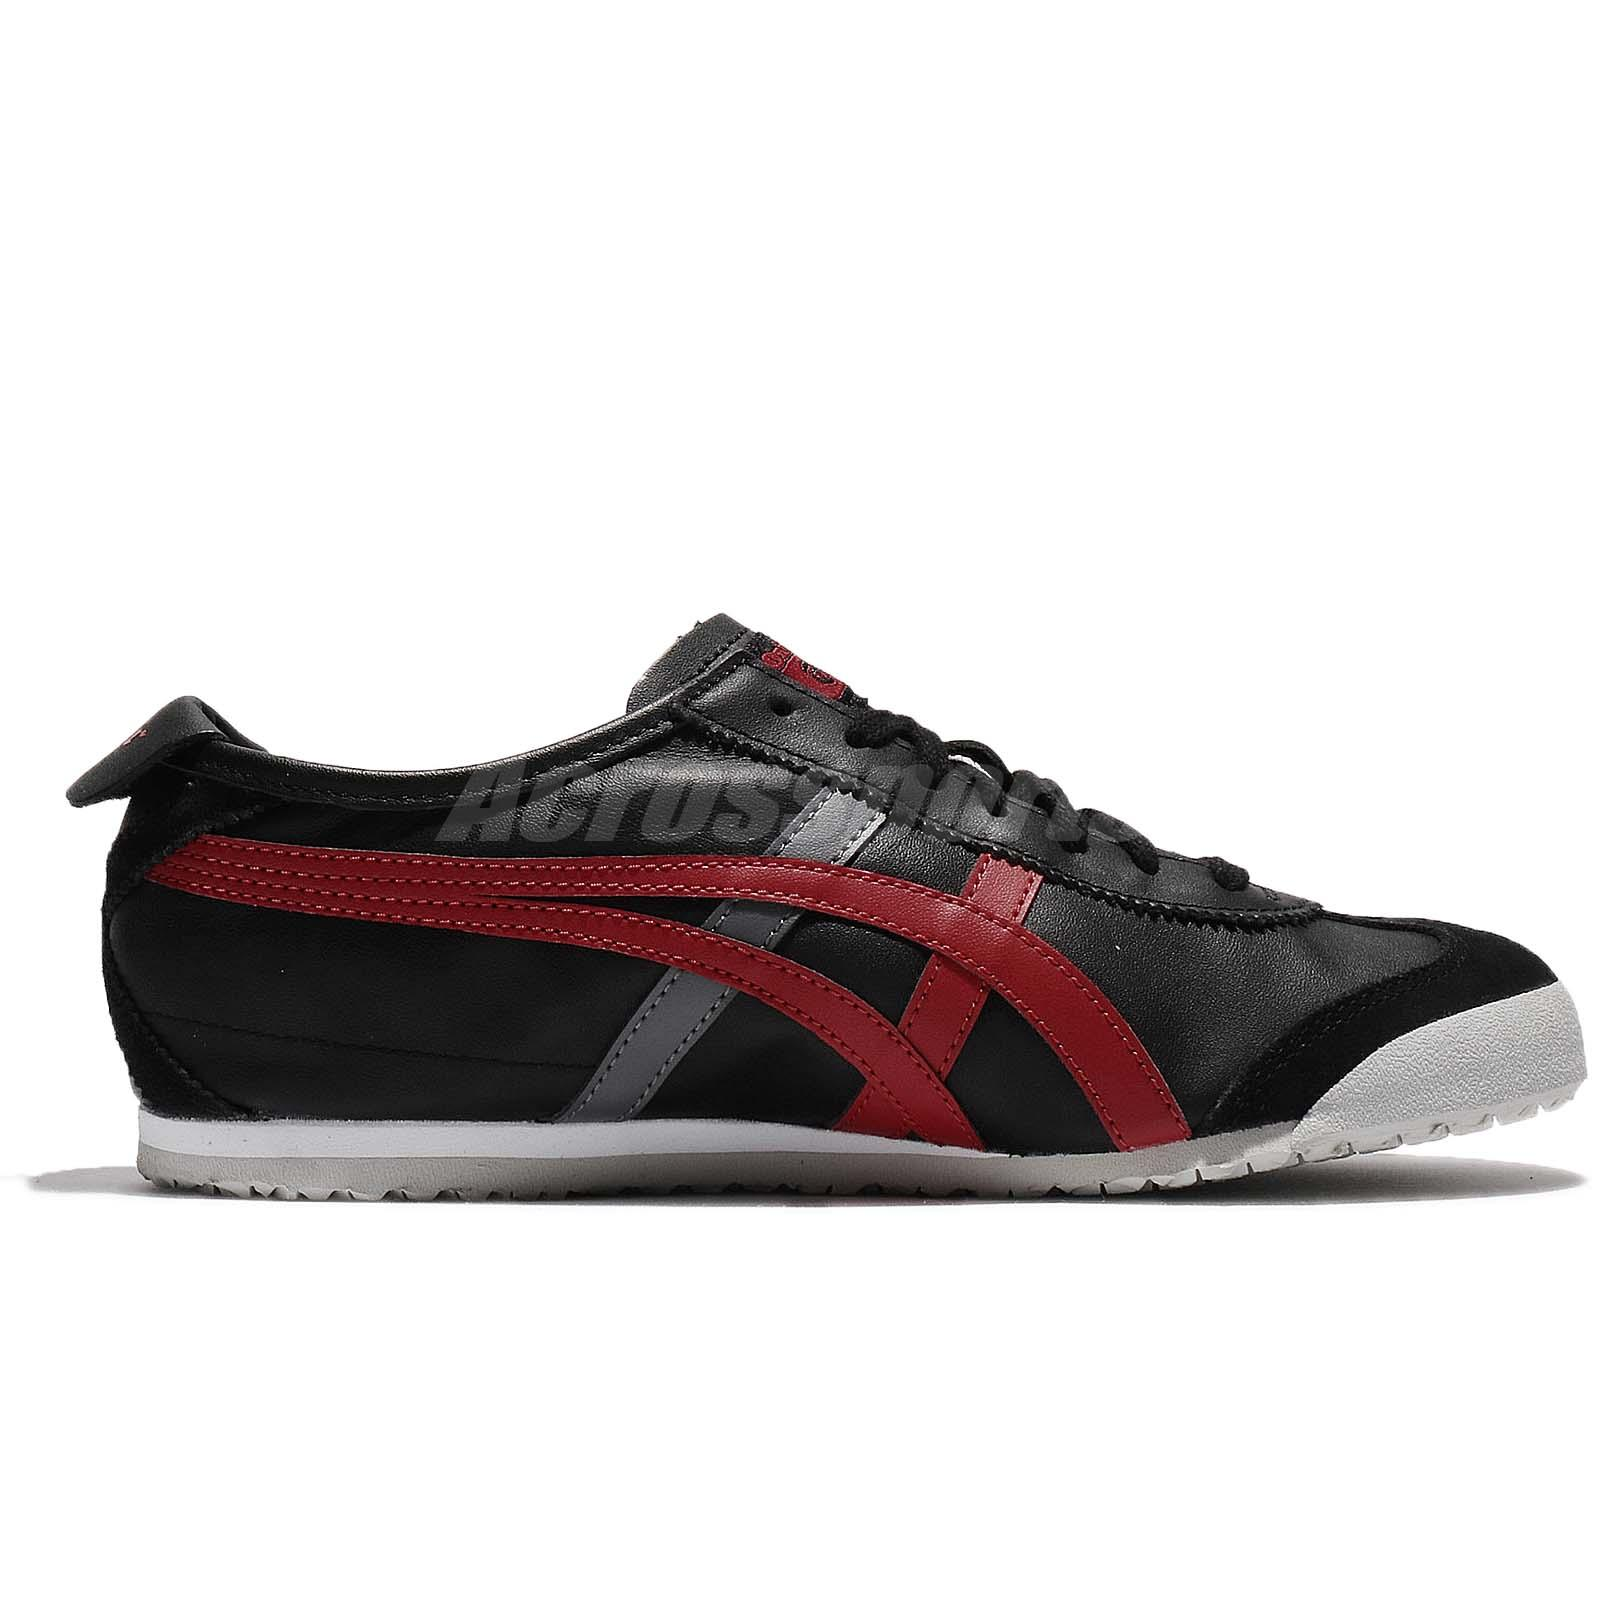 onitsuka tiger mexico 66 black and red 08